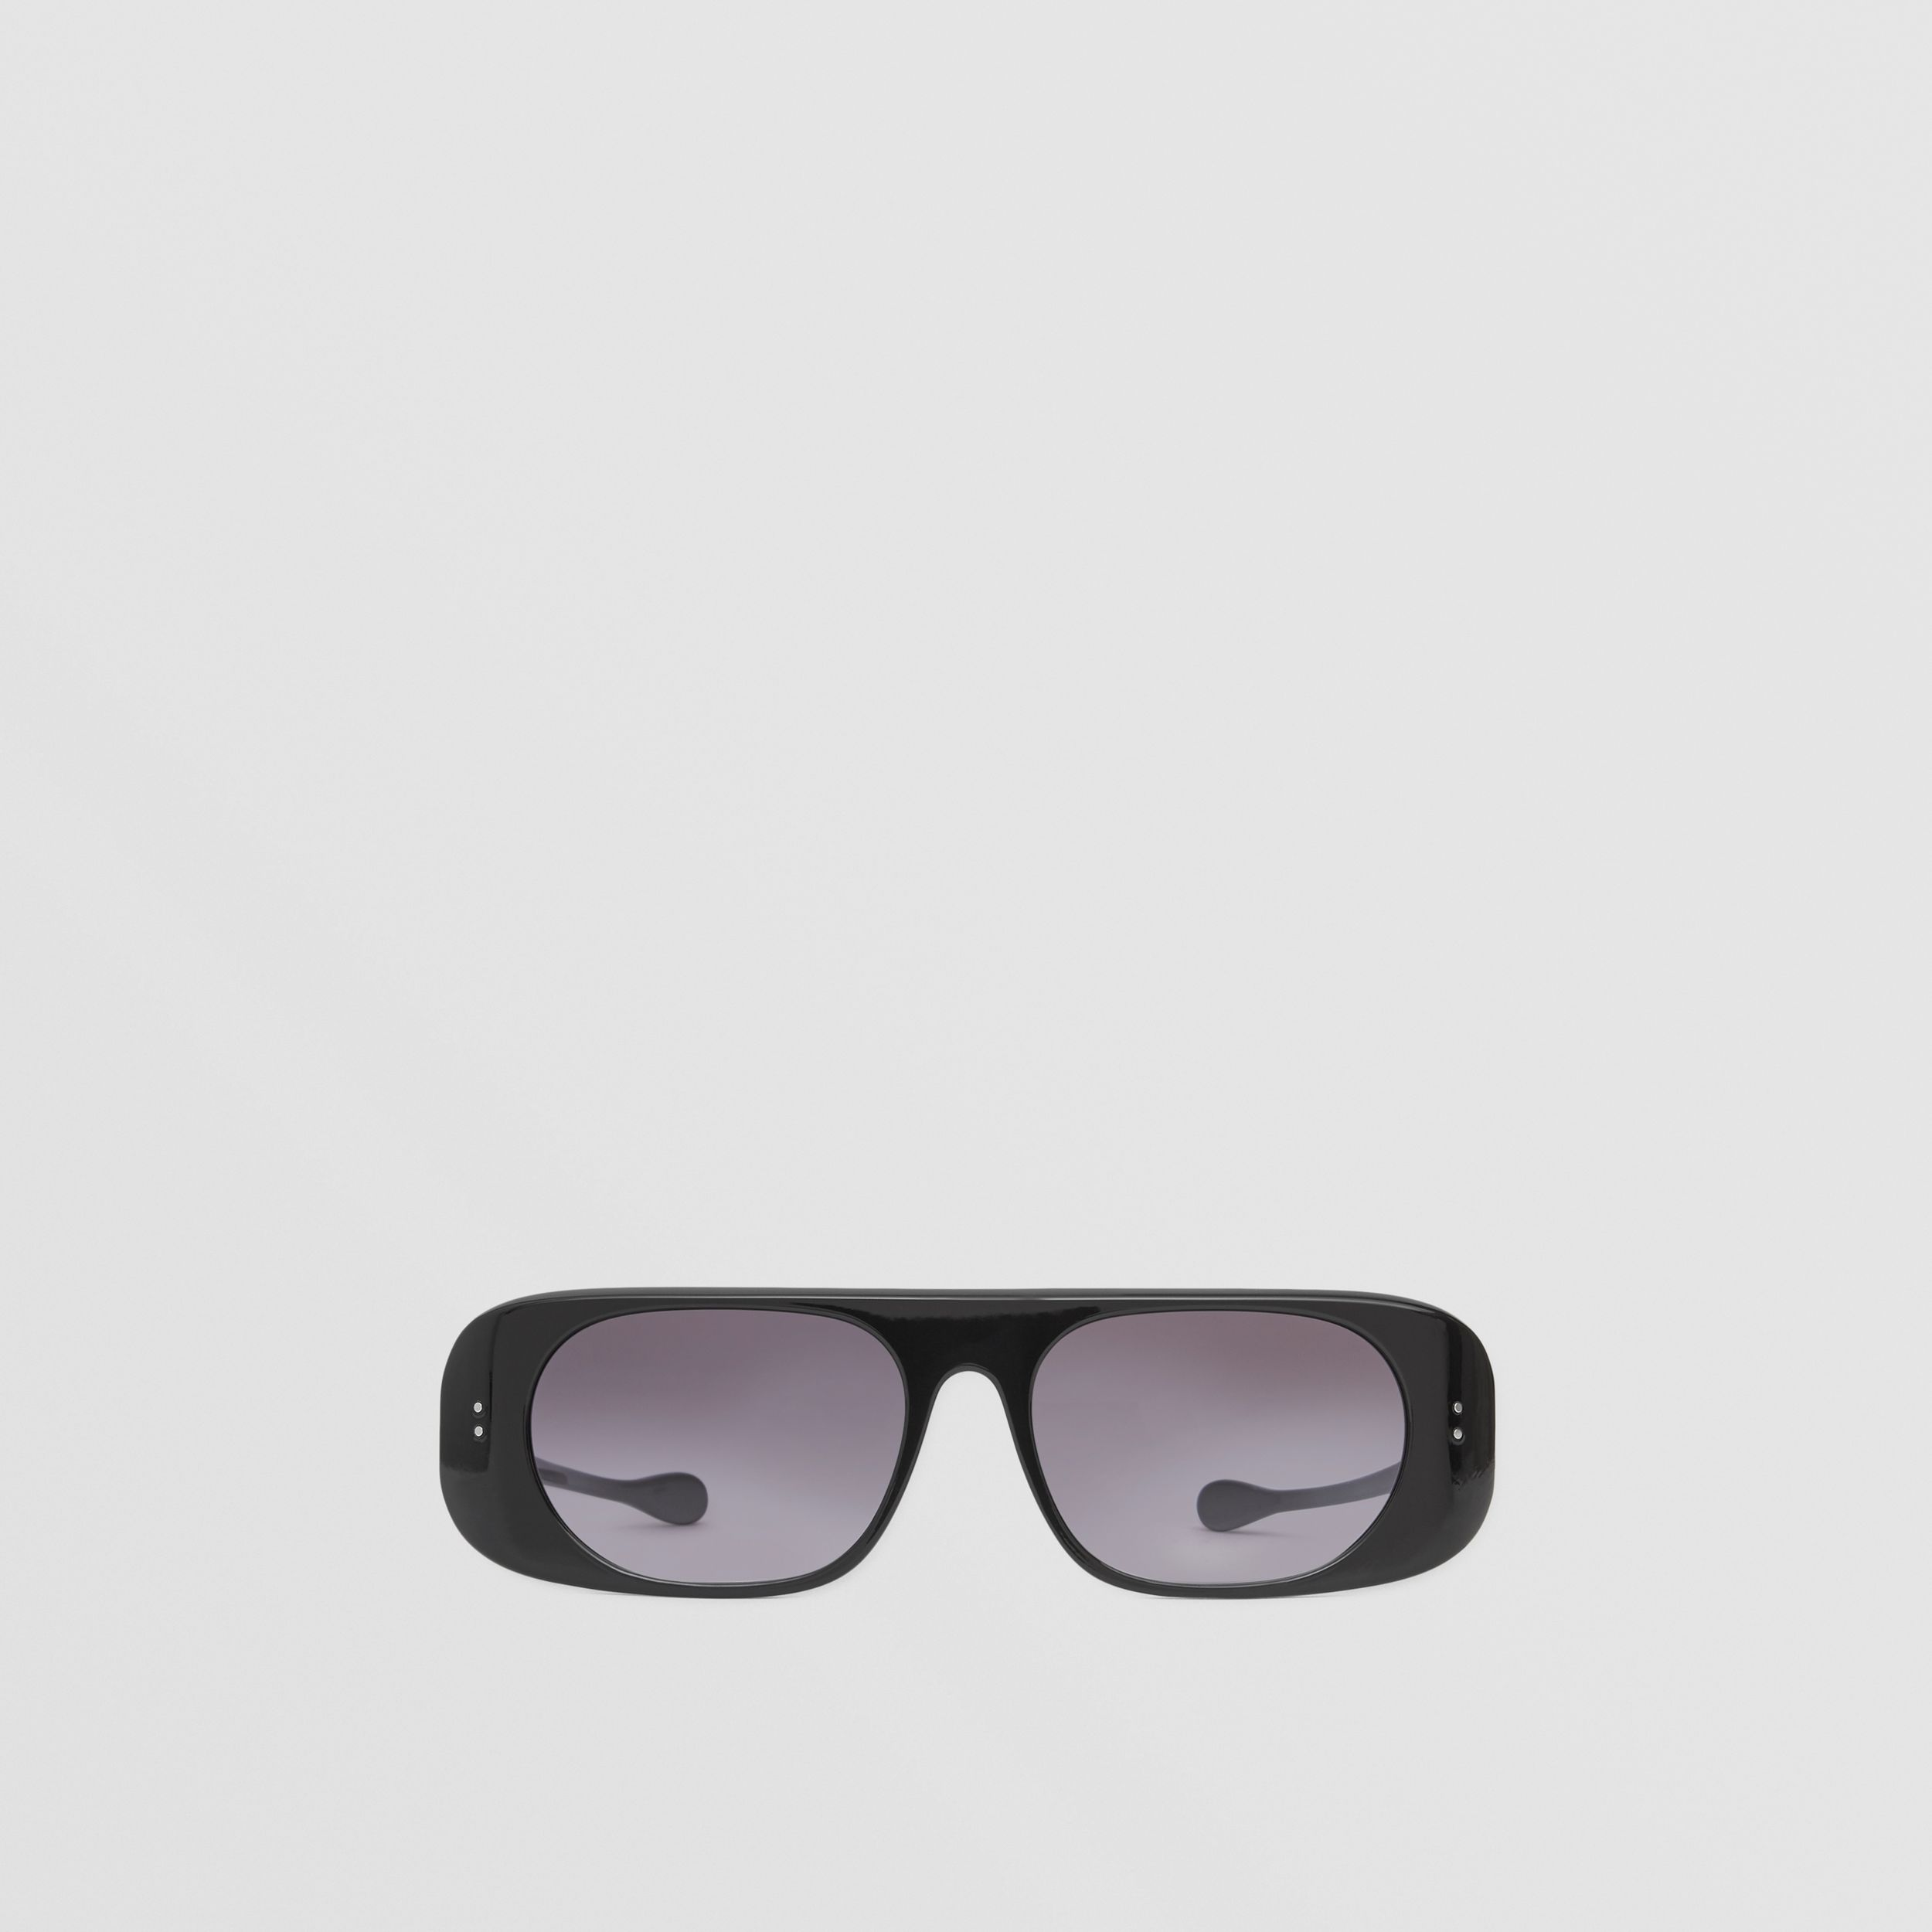 Blake Sunglasses in Black | Burberry - 1